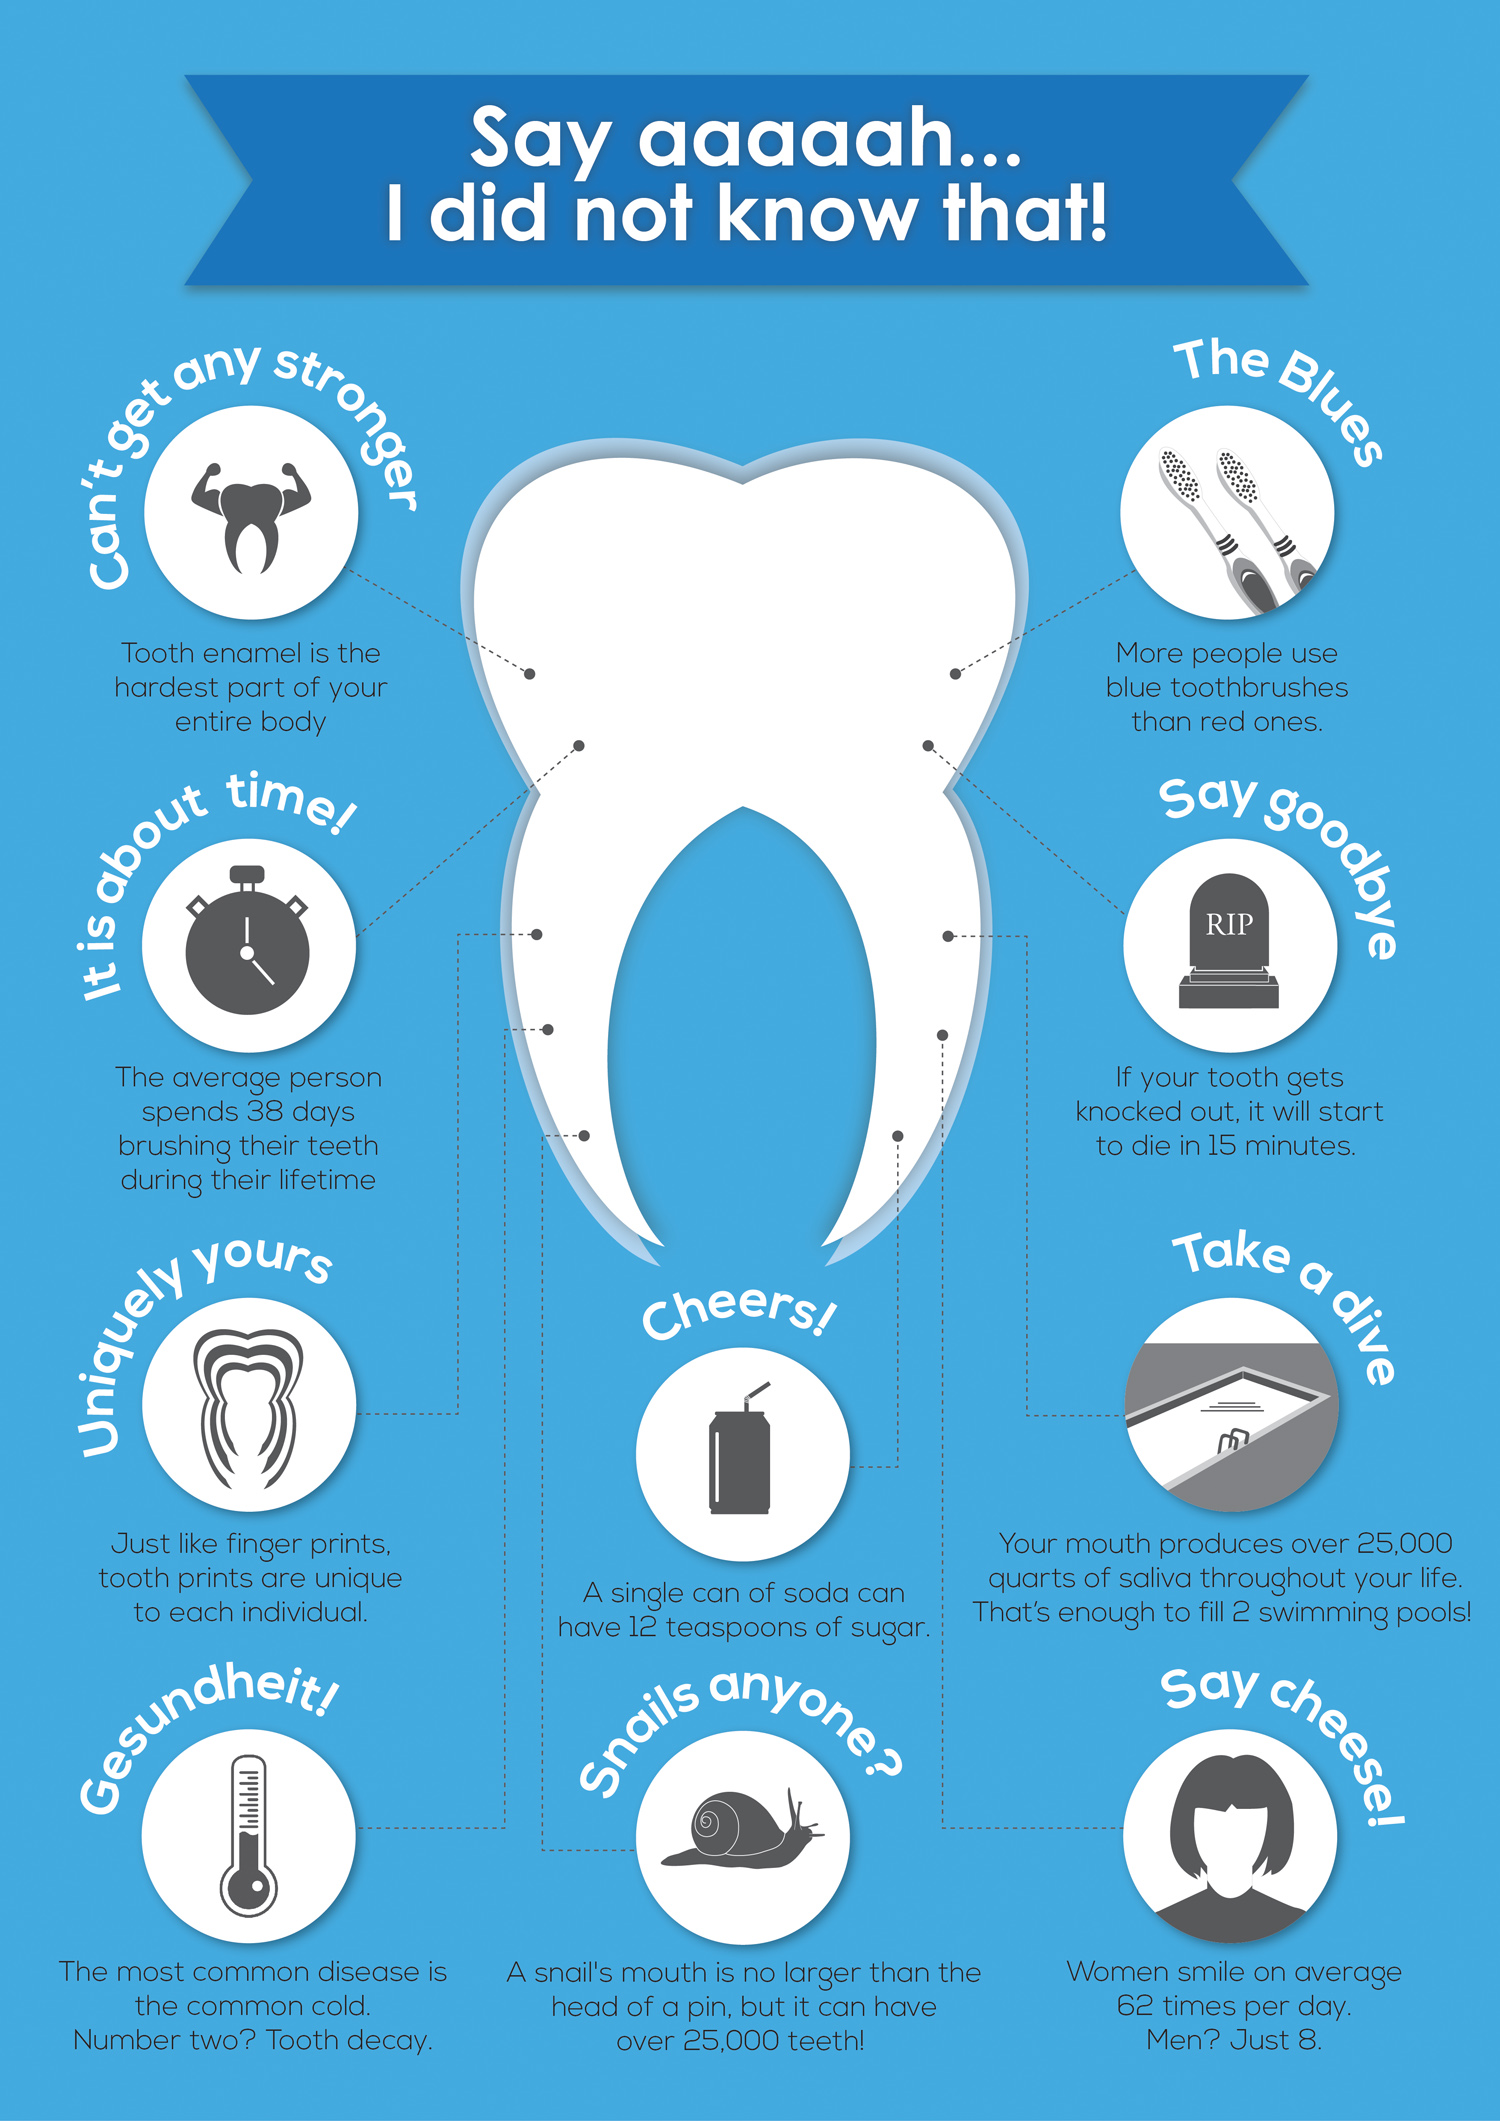 10 Cool Facts About Your Teeth